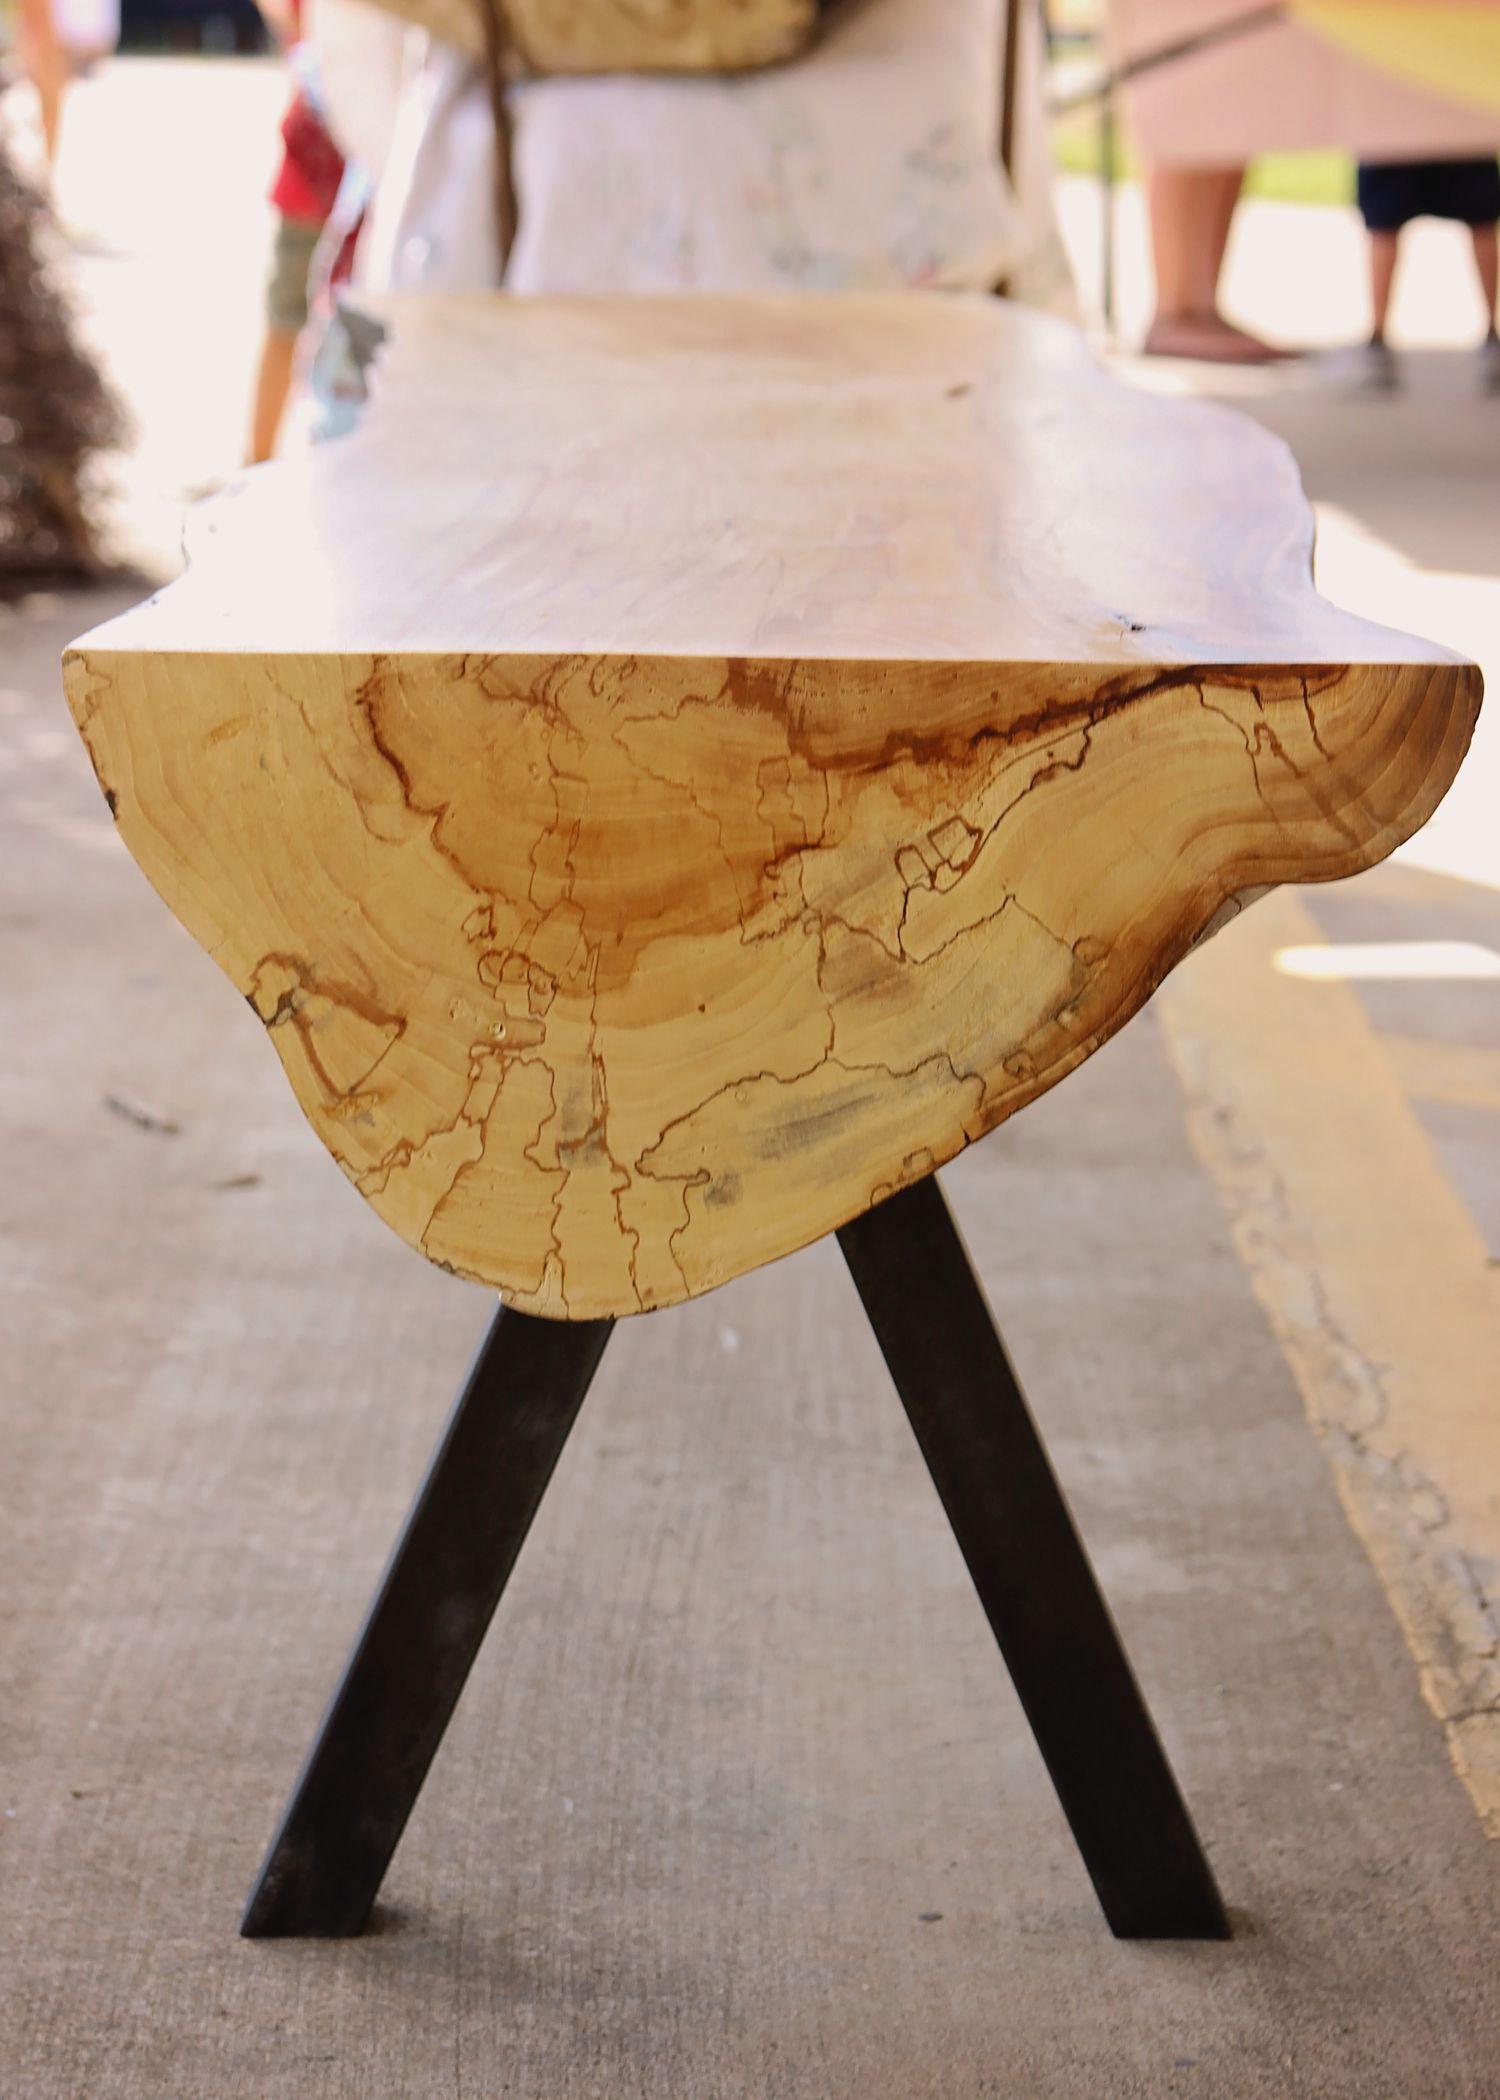 Sycamore Bench From Dead Sycamore Tree Wood Furniture